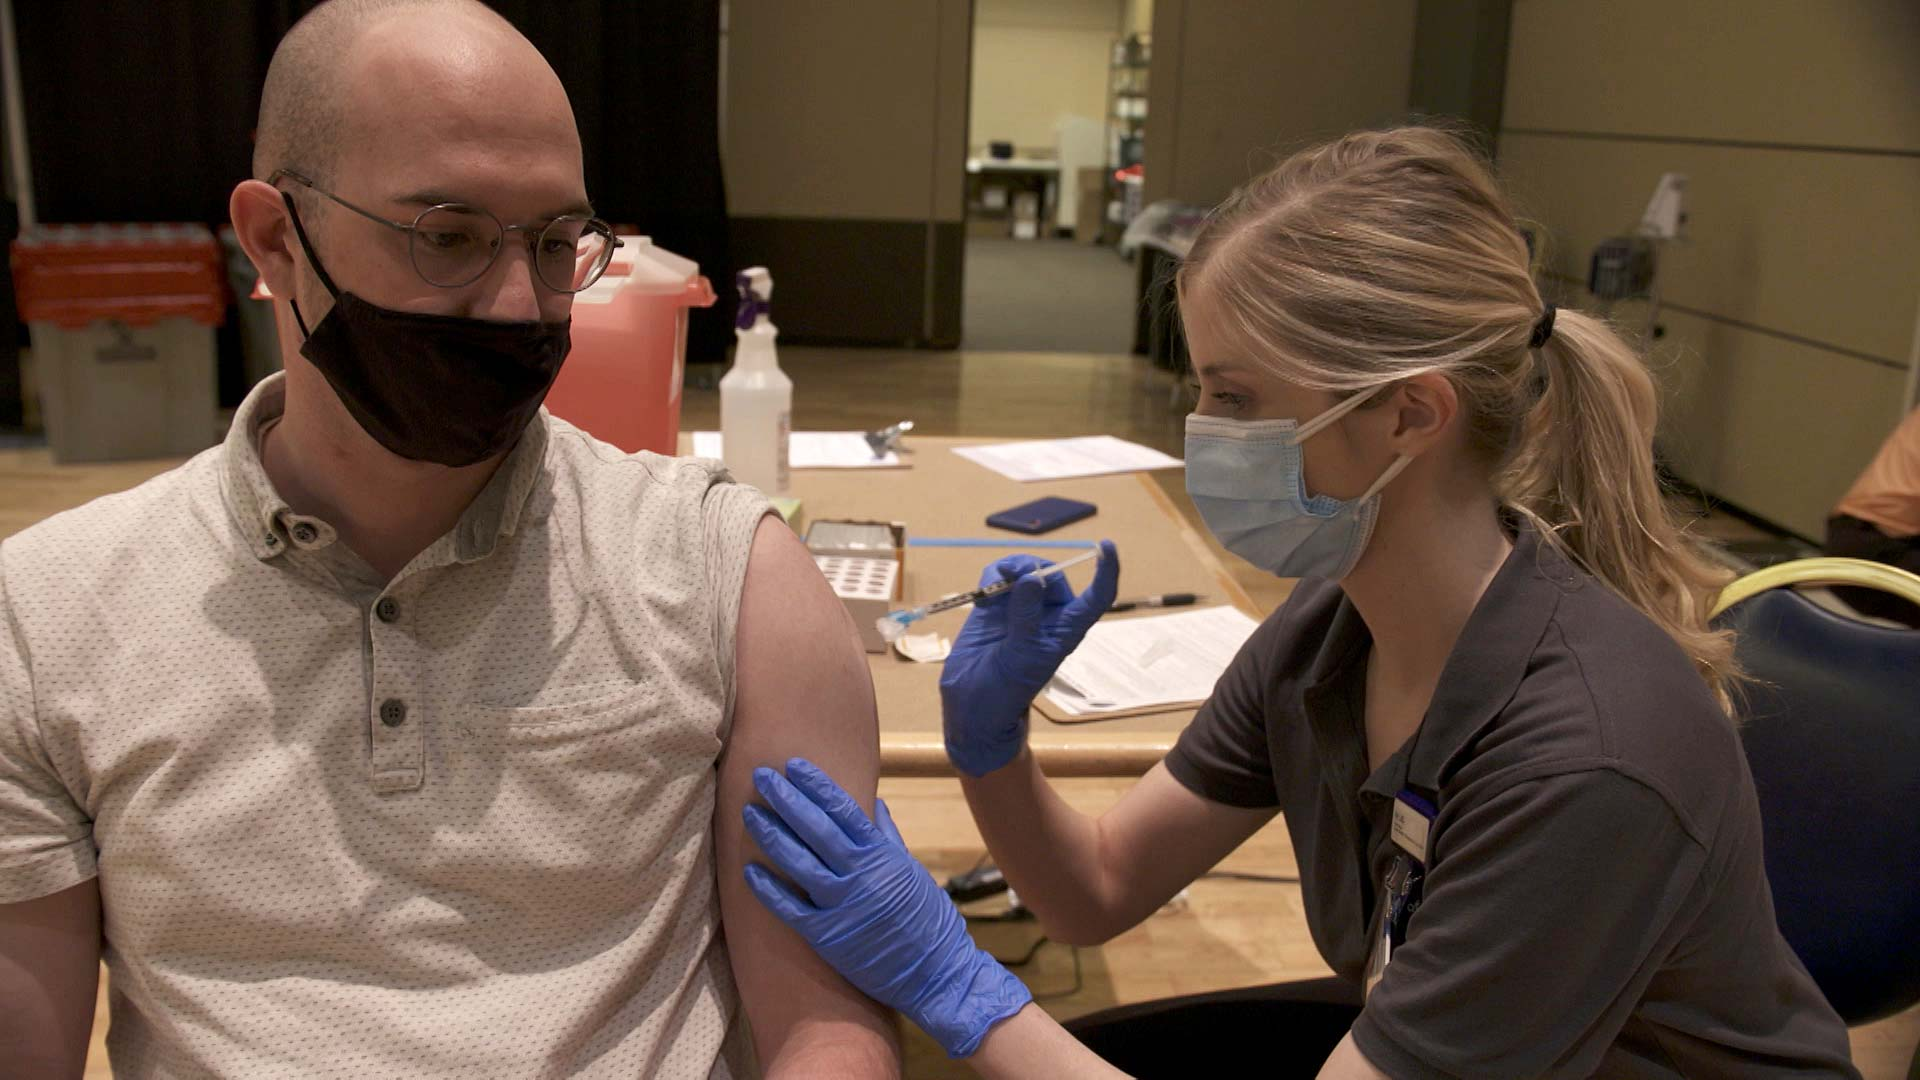 University of Arizona student Blake Gerken receives a dose of Moderna's COVID-19 vaccine at the campus's Student Union Memorial Center on April 16, 2021 as a participant in a nationwide vaccine study involving more than 20 universities.